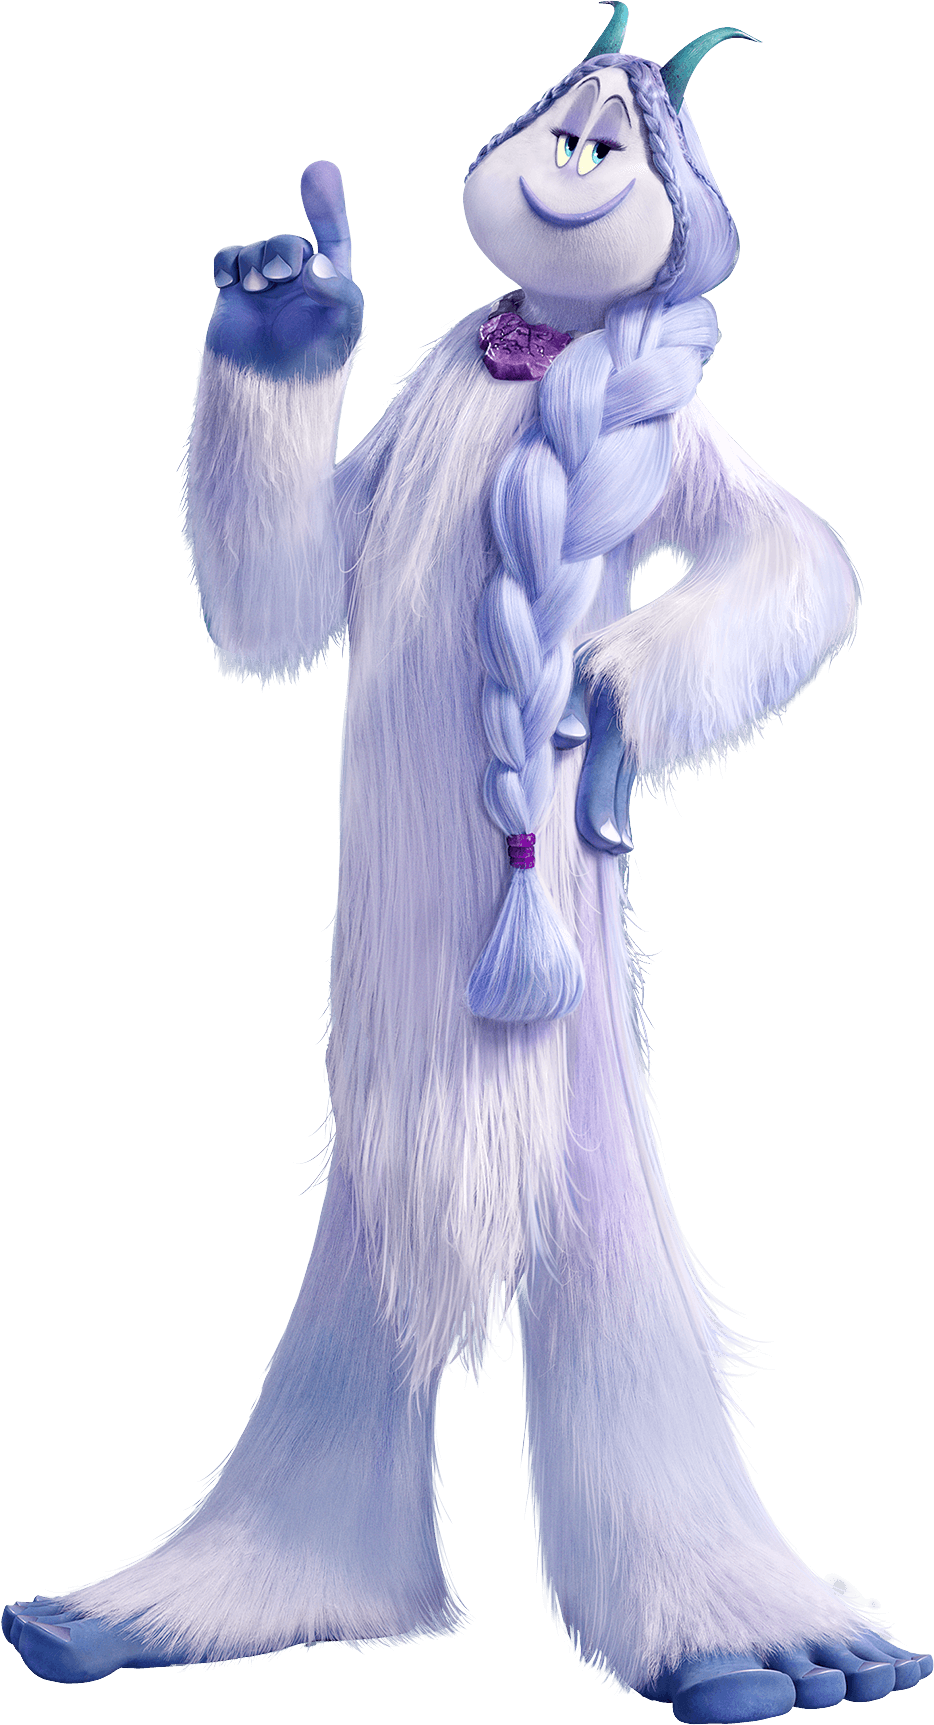 Smallfoot Meechee Yeti Holding Finger Up transparent PNG.